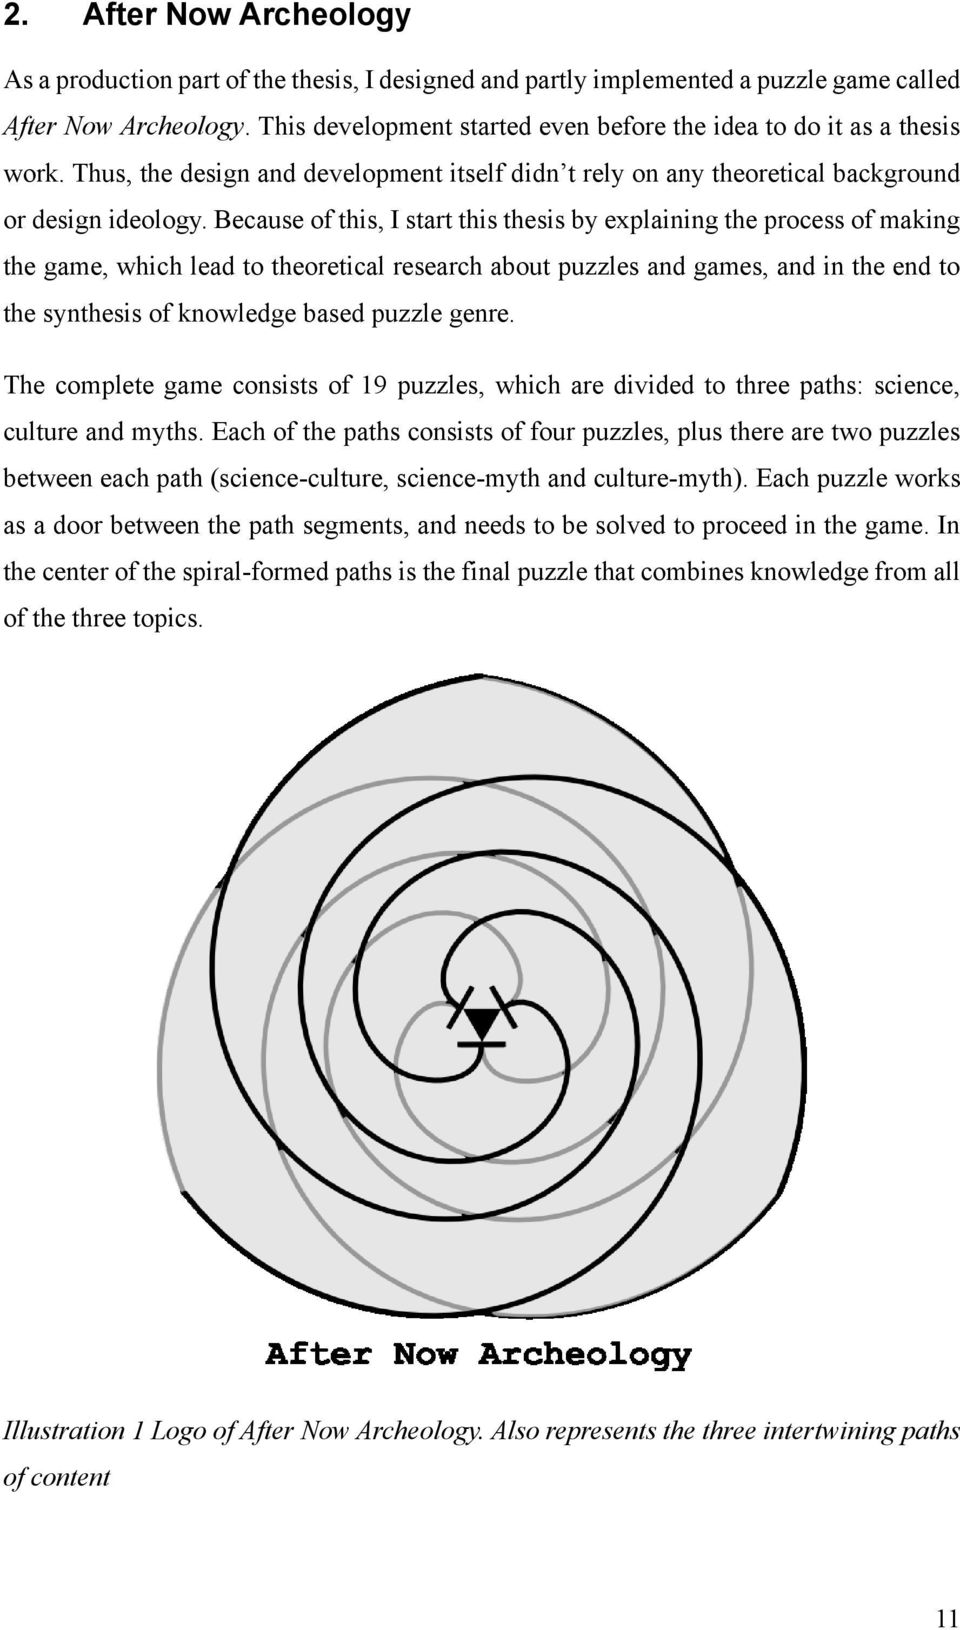 Because of this, I start this thesis by explaining the process of making the game, which lead to theoretical research about puzzles and games, and in the end to the synthesis of knowledge based